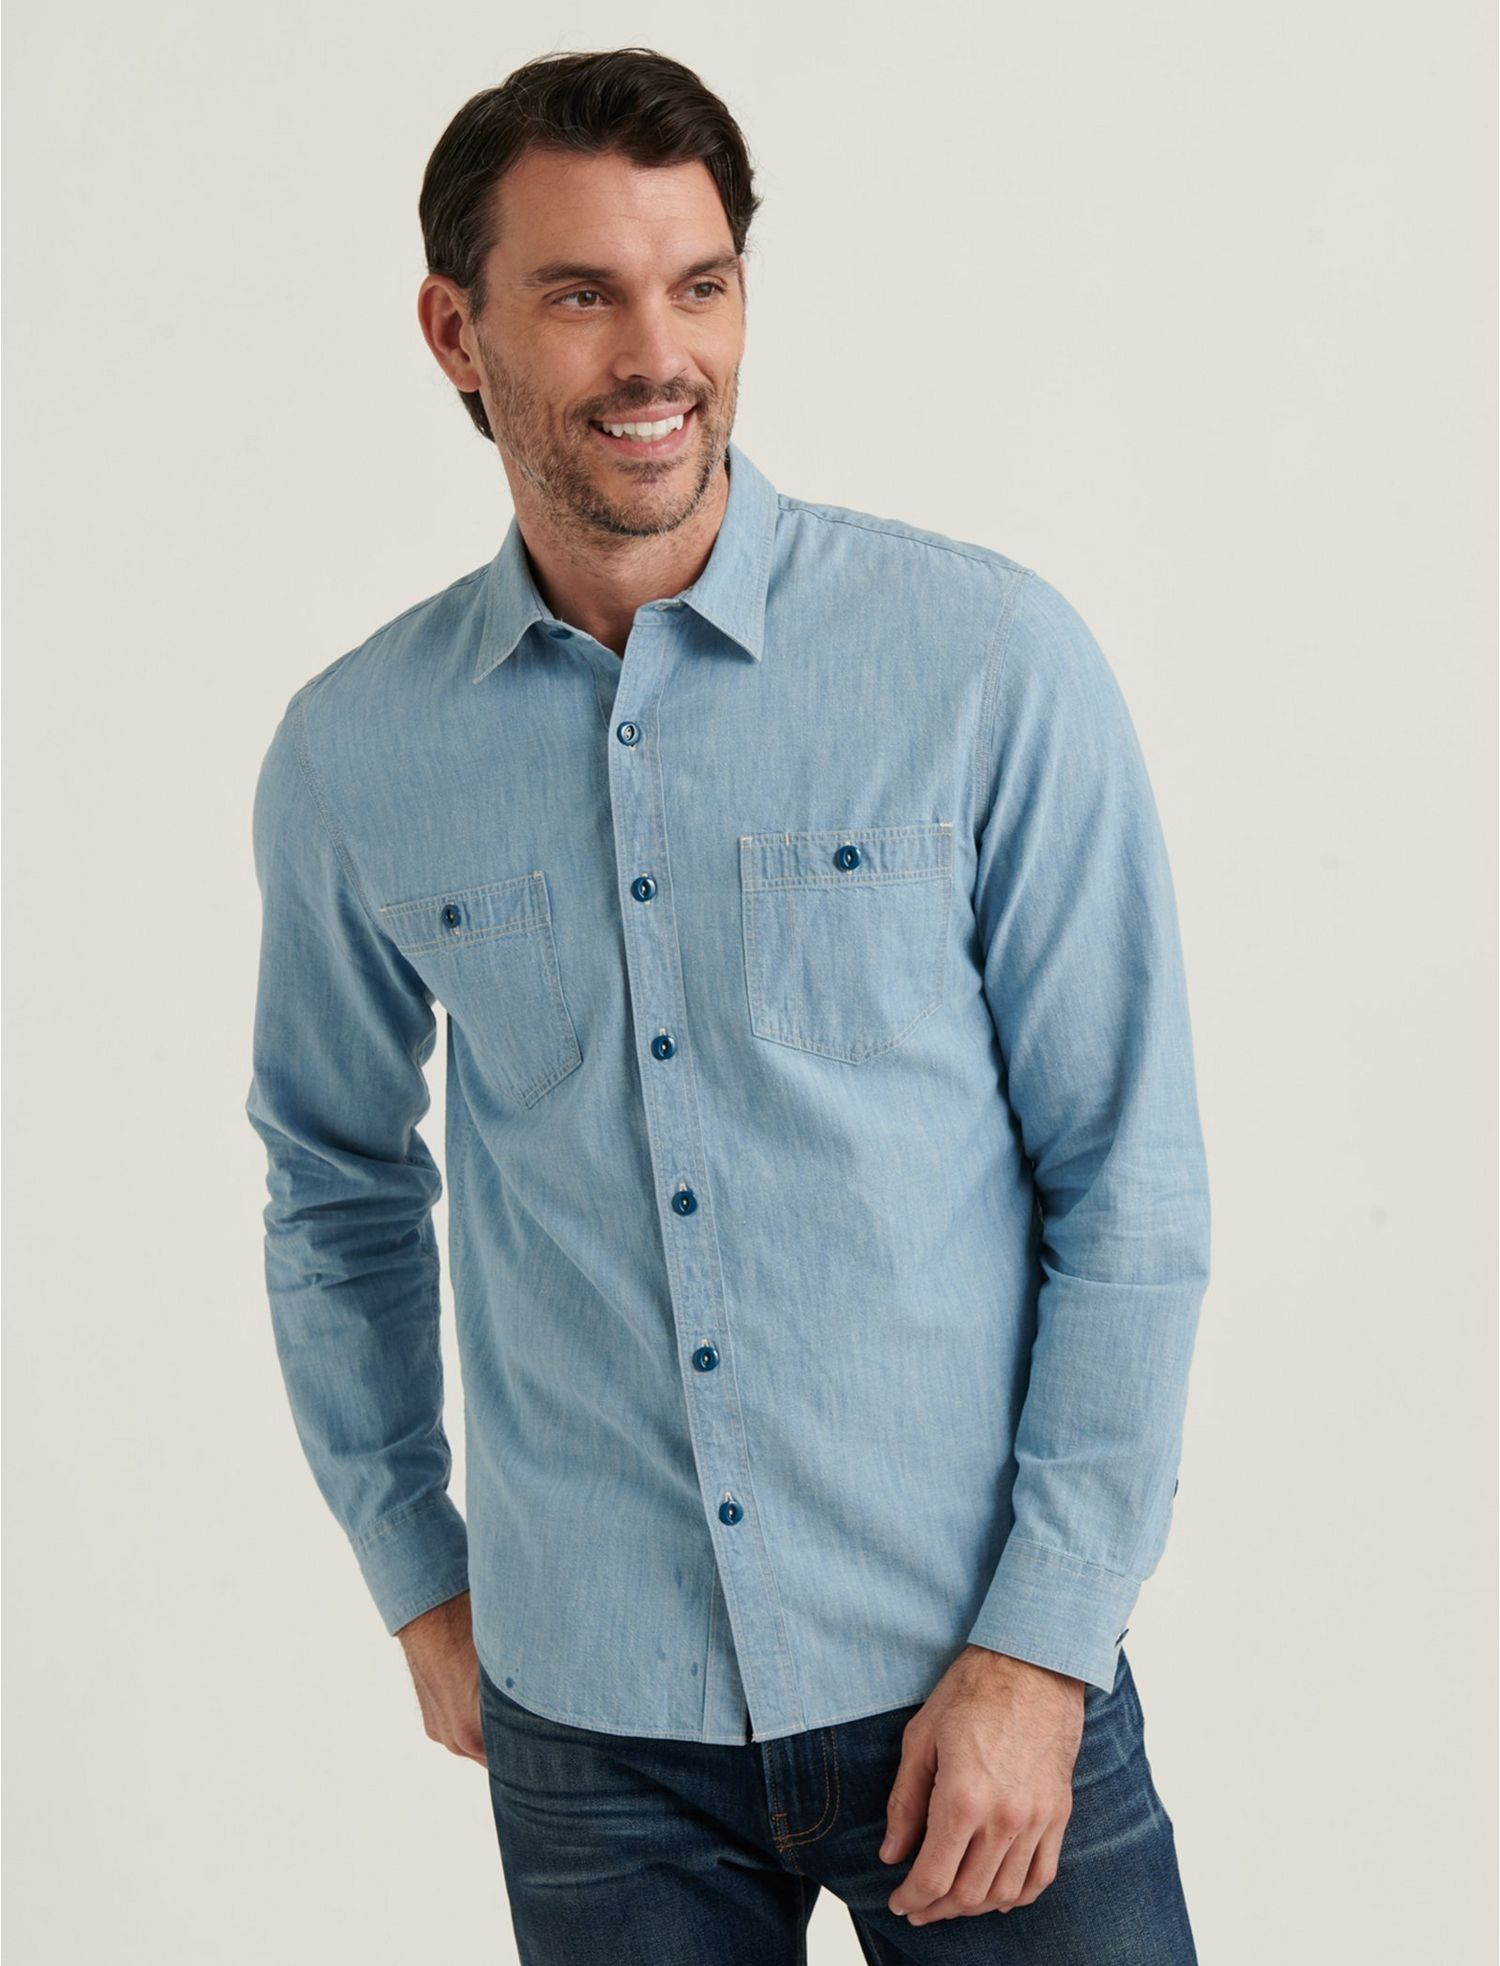 Men's Vintage Workwear – 1920s, 1930s, 1940s, 1950s Lucky Brand Jaybird Workwear Shirt In Blue Size Small $19.98 AT vintagedancer.com